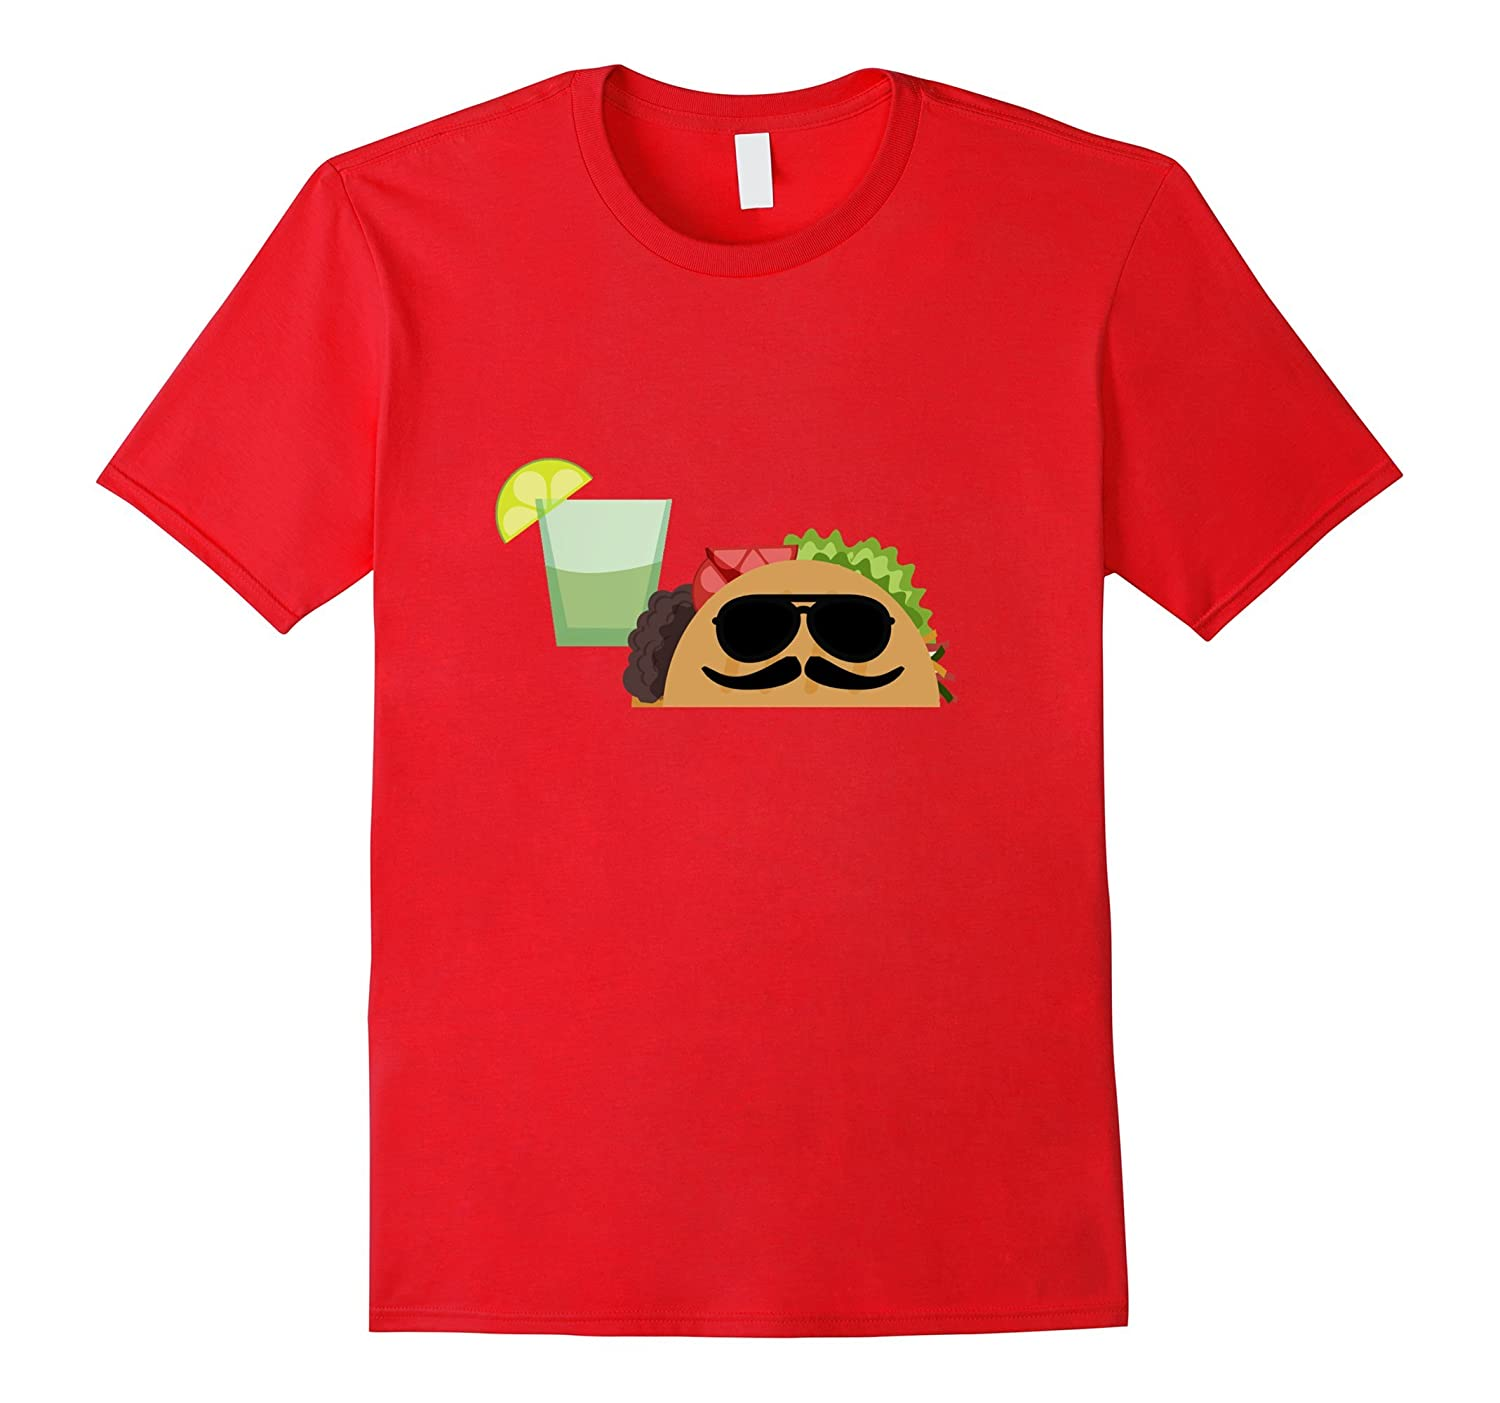 Taco Time T-Shirt - Funny Sunglasses Burrito Mexican Food-Vaci